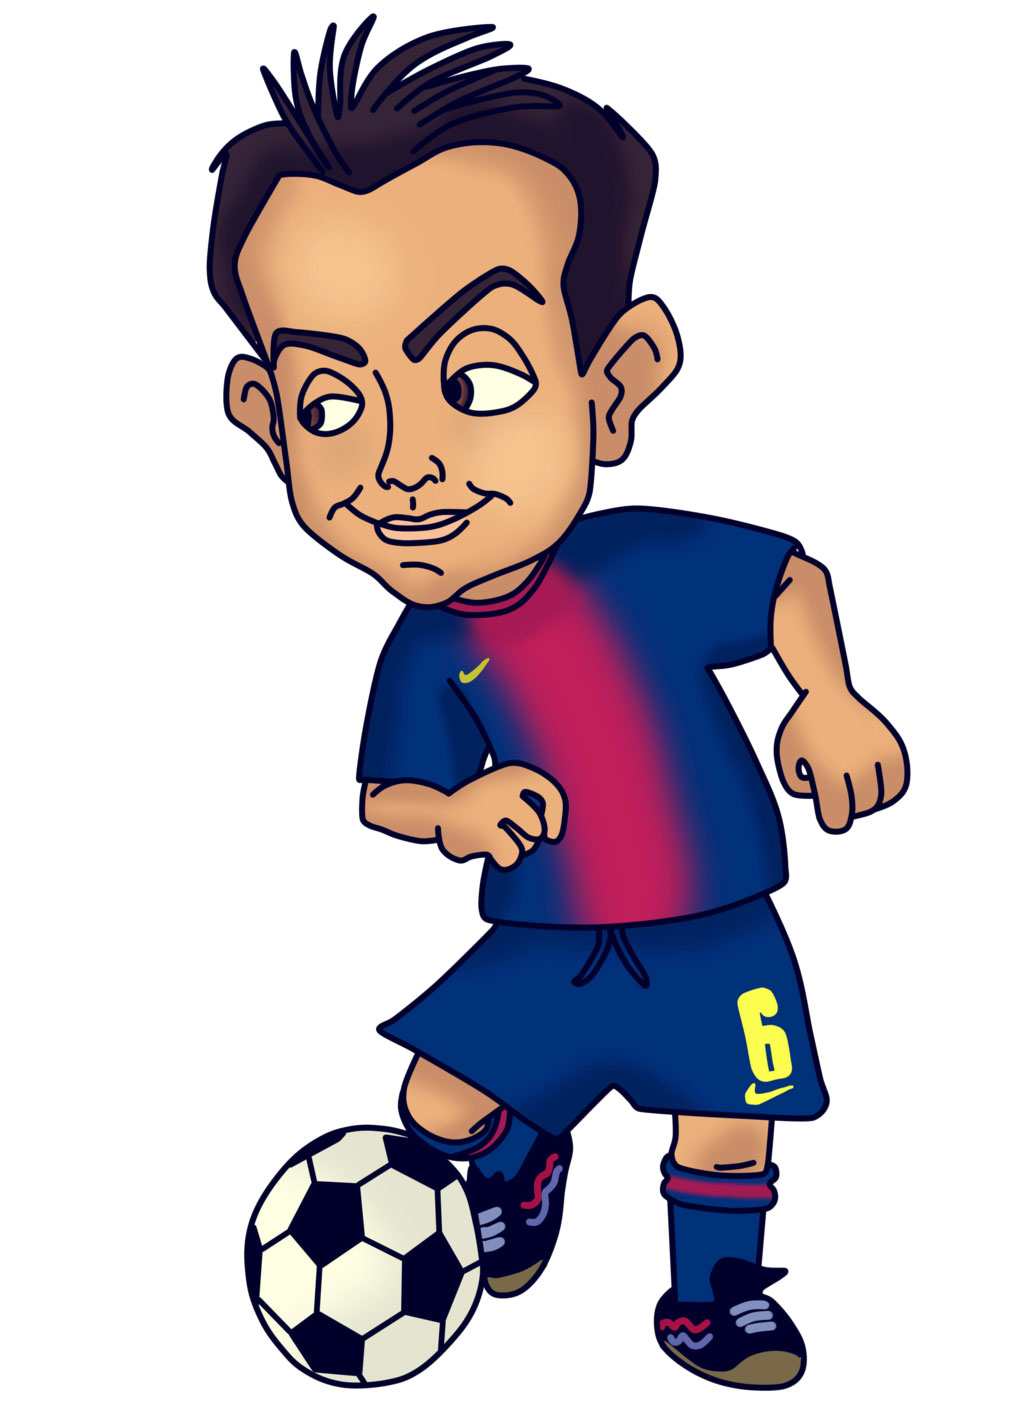 Funny soccer clipart jpg library library Free Funny Football Cartoons, Download Free Clip Art, Free Clip Art ... jpg library library